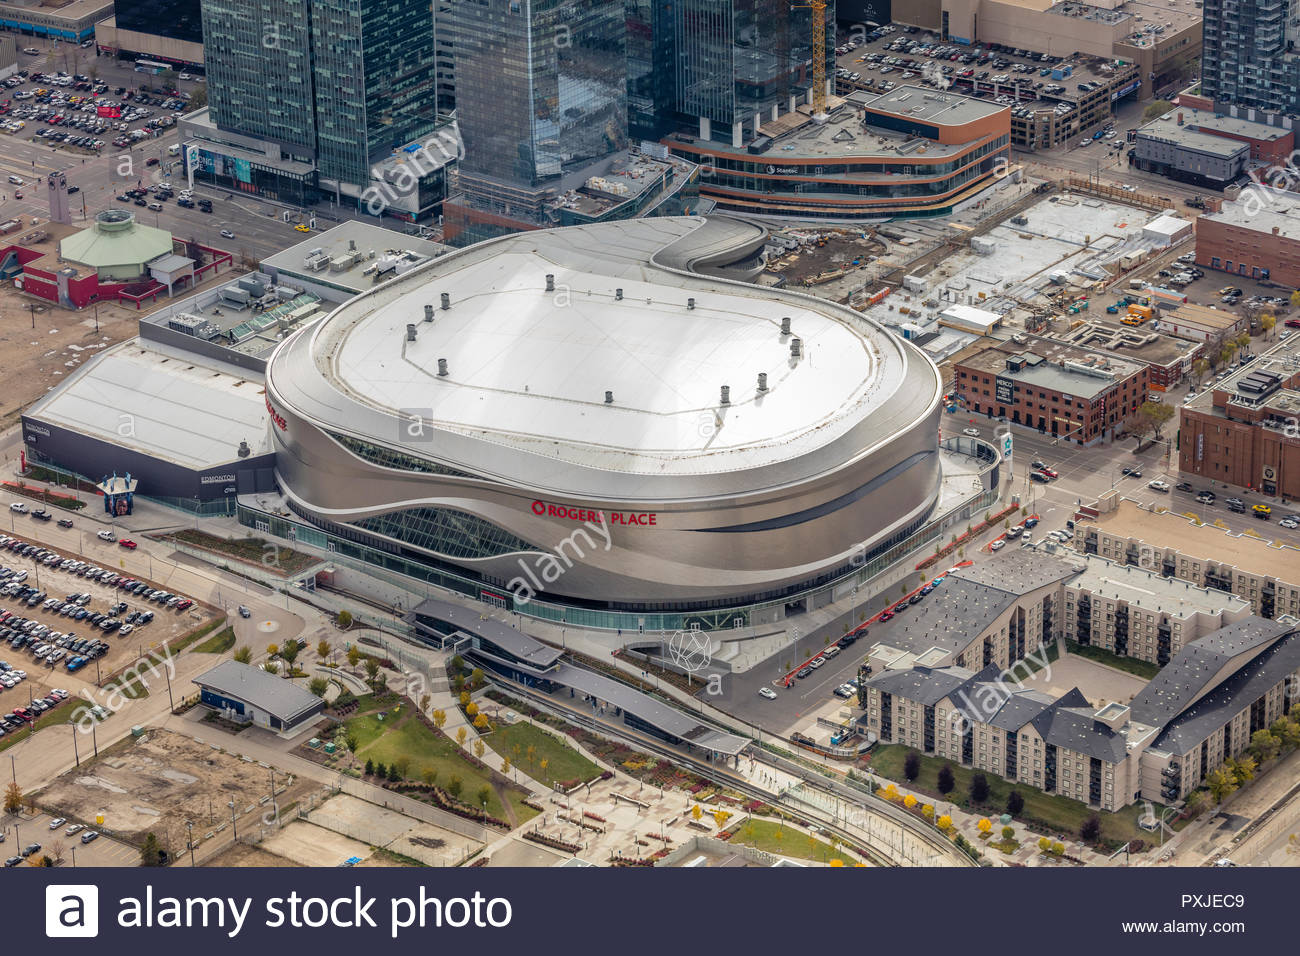 Aerial close up view of Rogers Place arena in Edmonton, Alberta - Stock Image